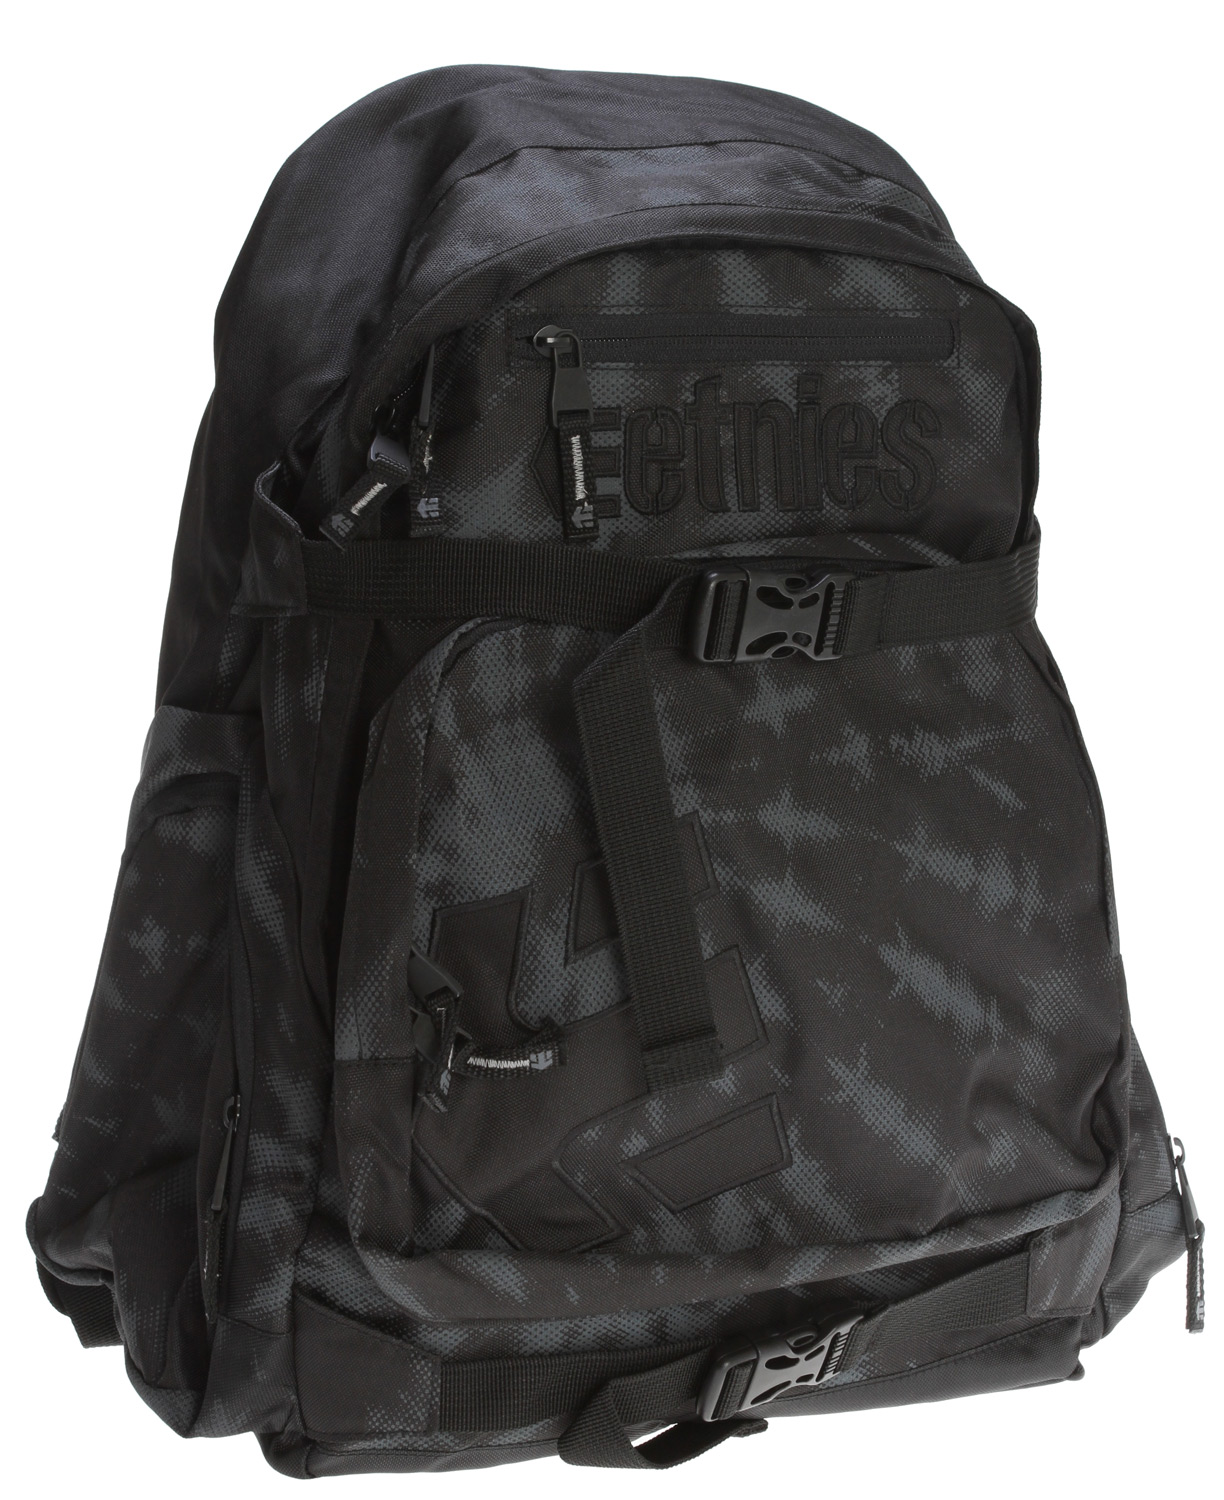 Skateboard Key Features of the Etnies Drake Backpack: 600D poly w/ pvc coating Large main compartment Front utility compartment Side storage pockets Internal storage pockets Padded laptop sleeve Padded shoulder straps Skate straps Embroidered log appliques - $38.95